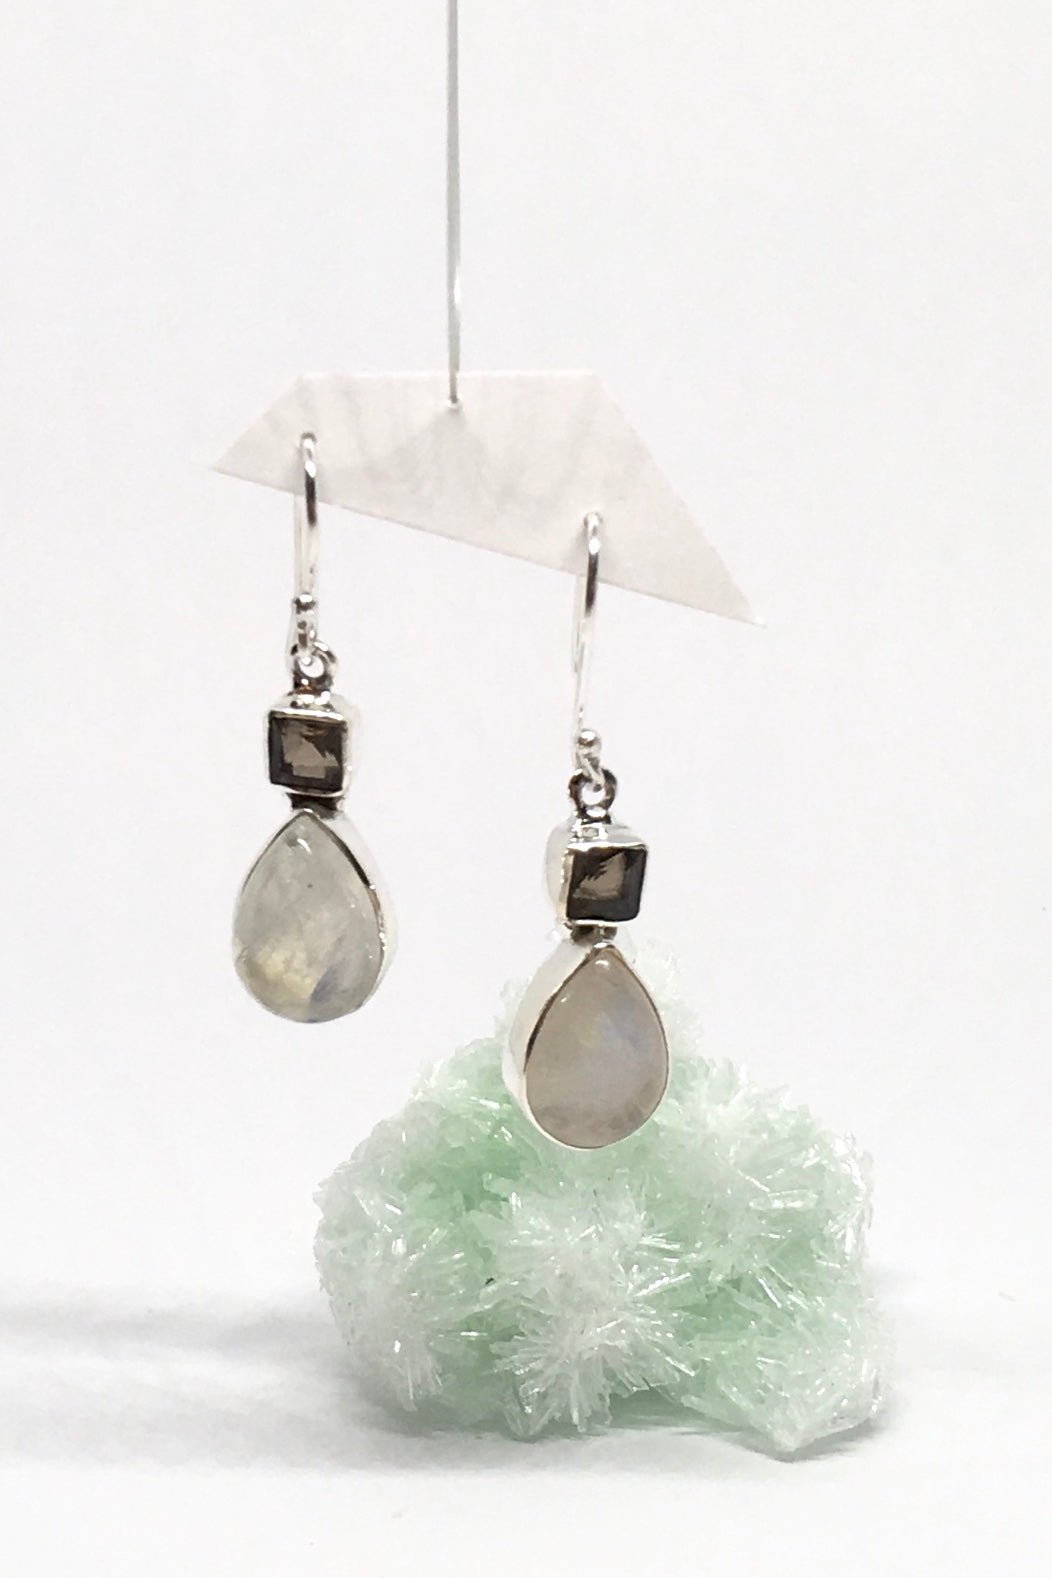 Oracle Earrings Moonstone Dance in 925 Silver with Smokey Quartz